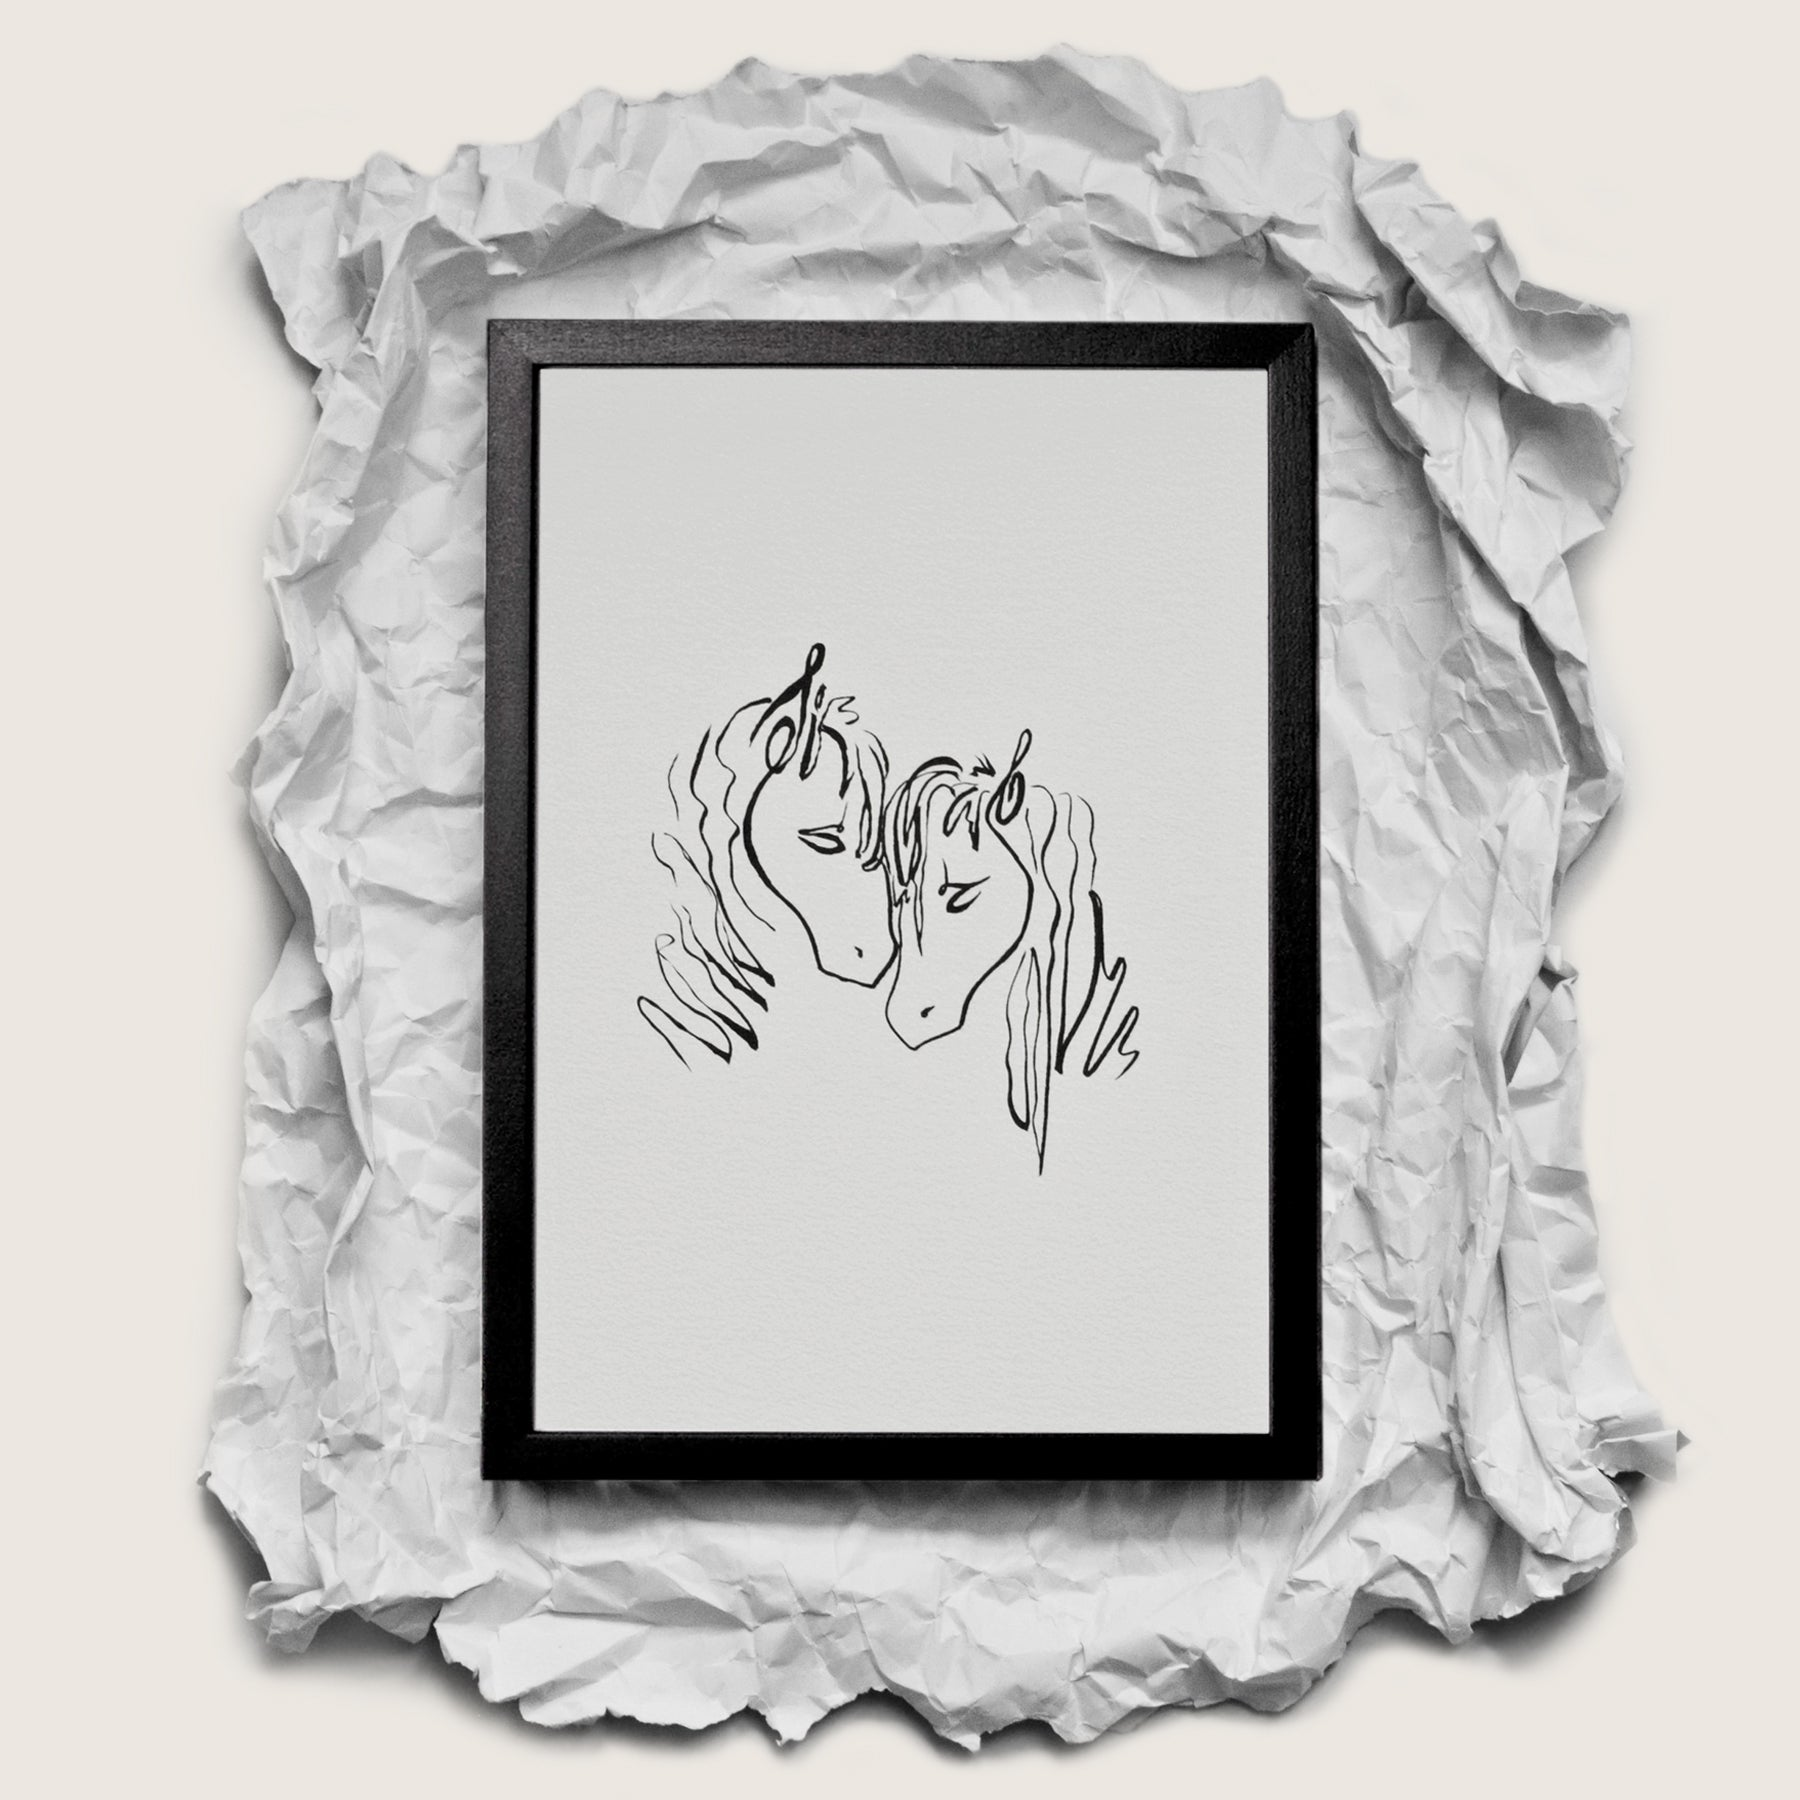 Love - Framed Art Print - Nicolette Toddor Hats and Accessories